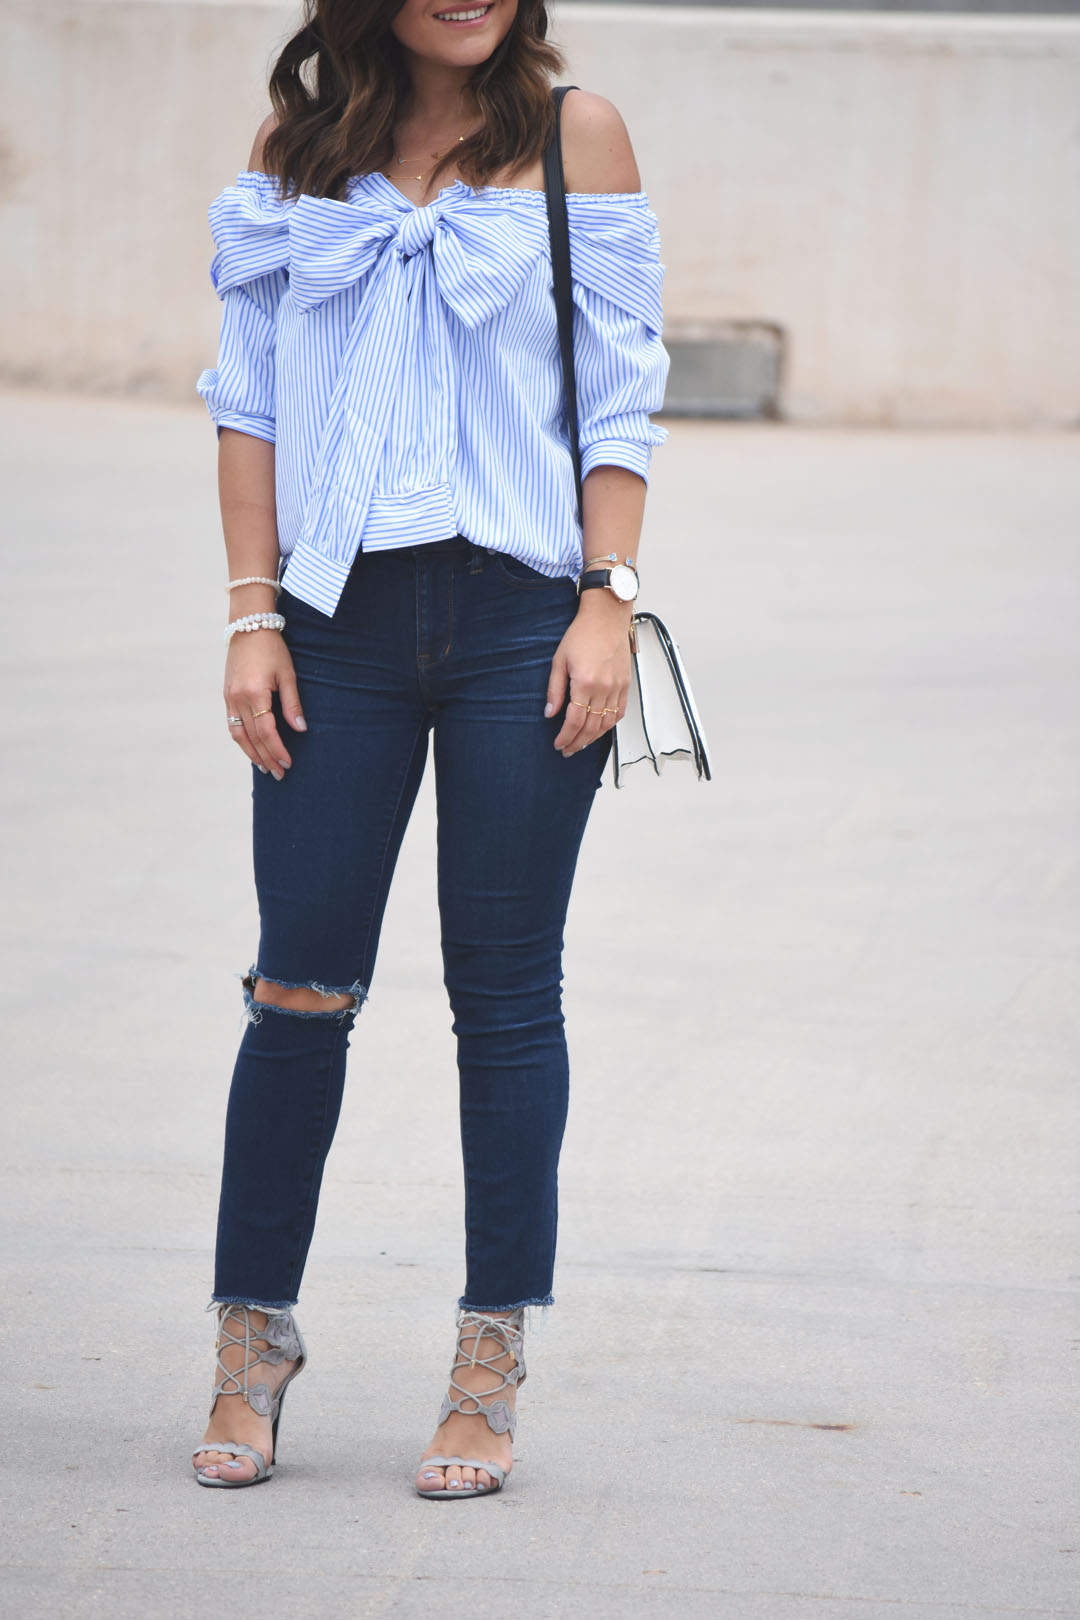 Carolina Hellal of the fashion blog Chic Talk wearing a casual look with a SheIn off the shoulder top and Madewell ripped jeans